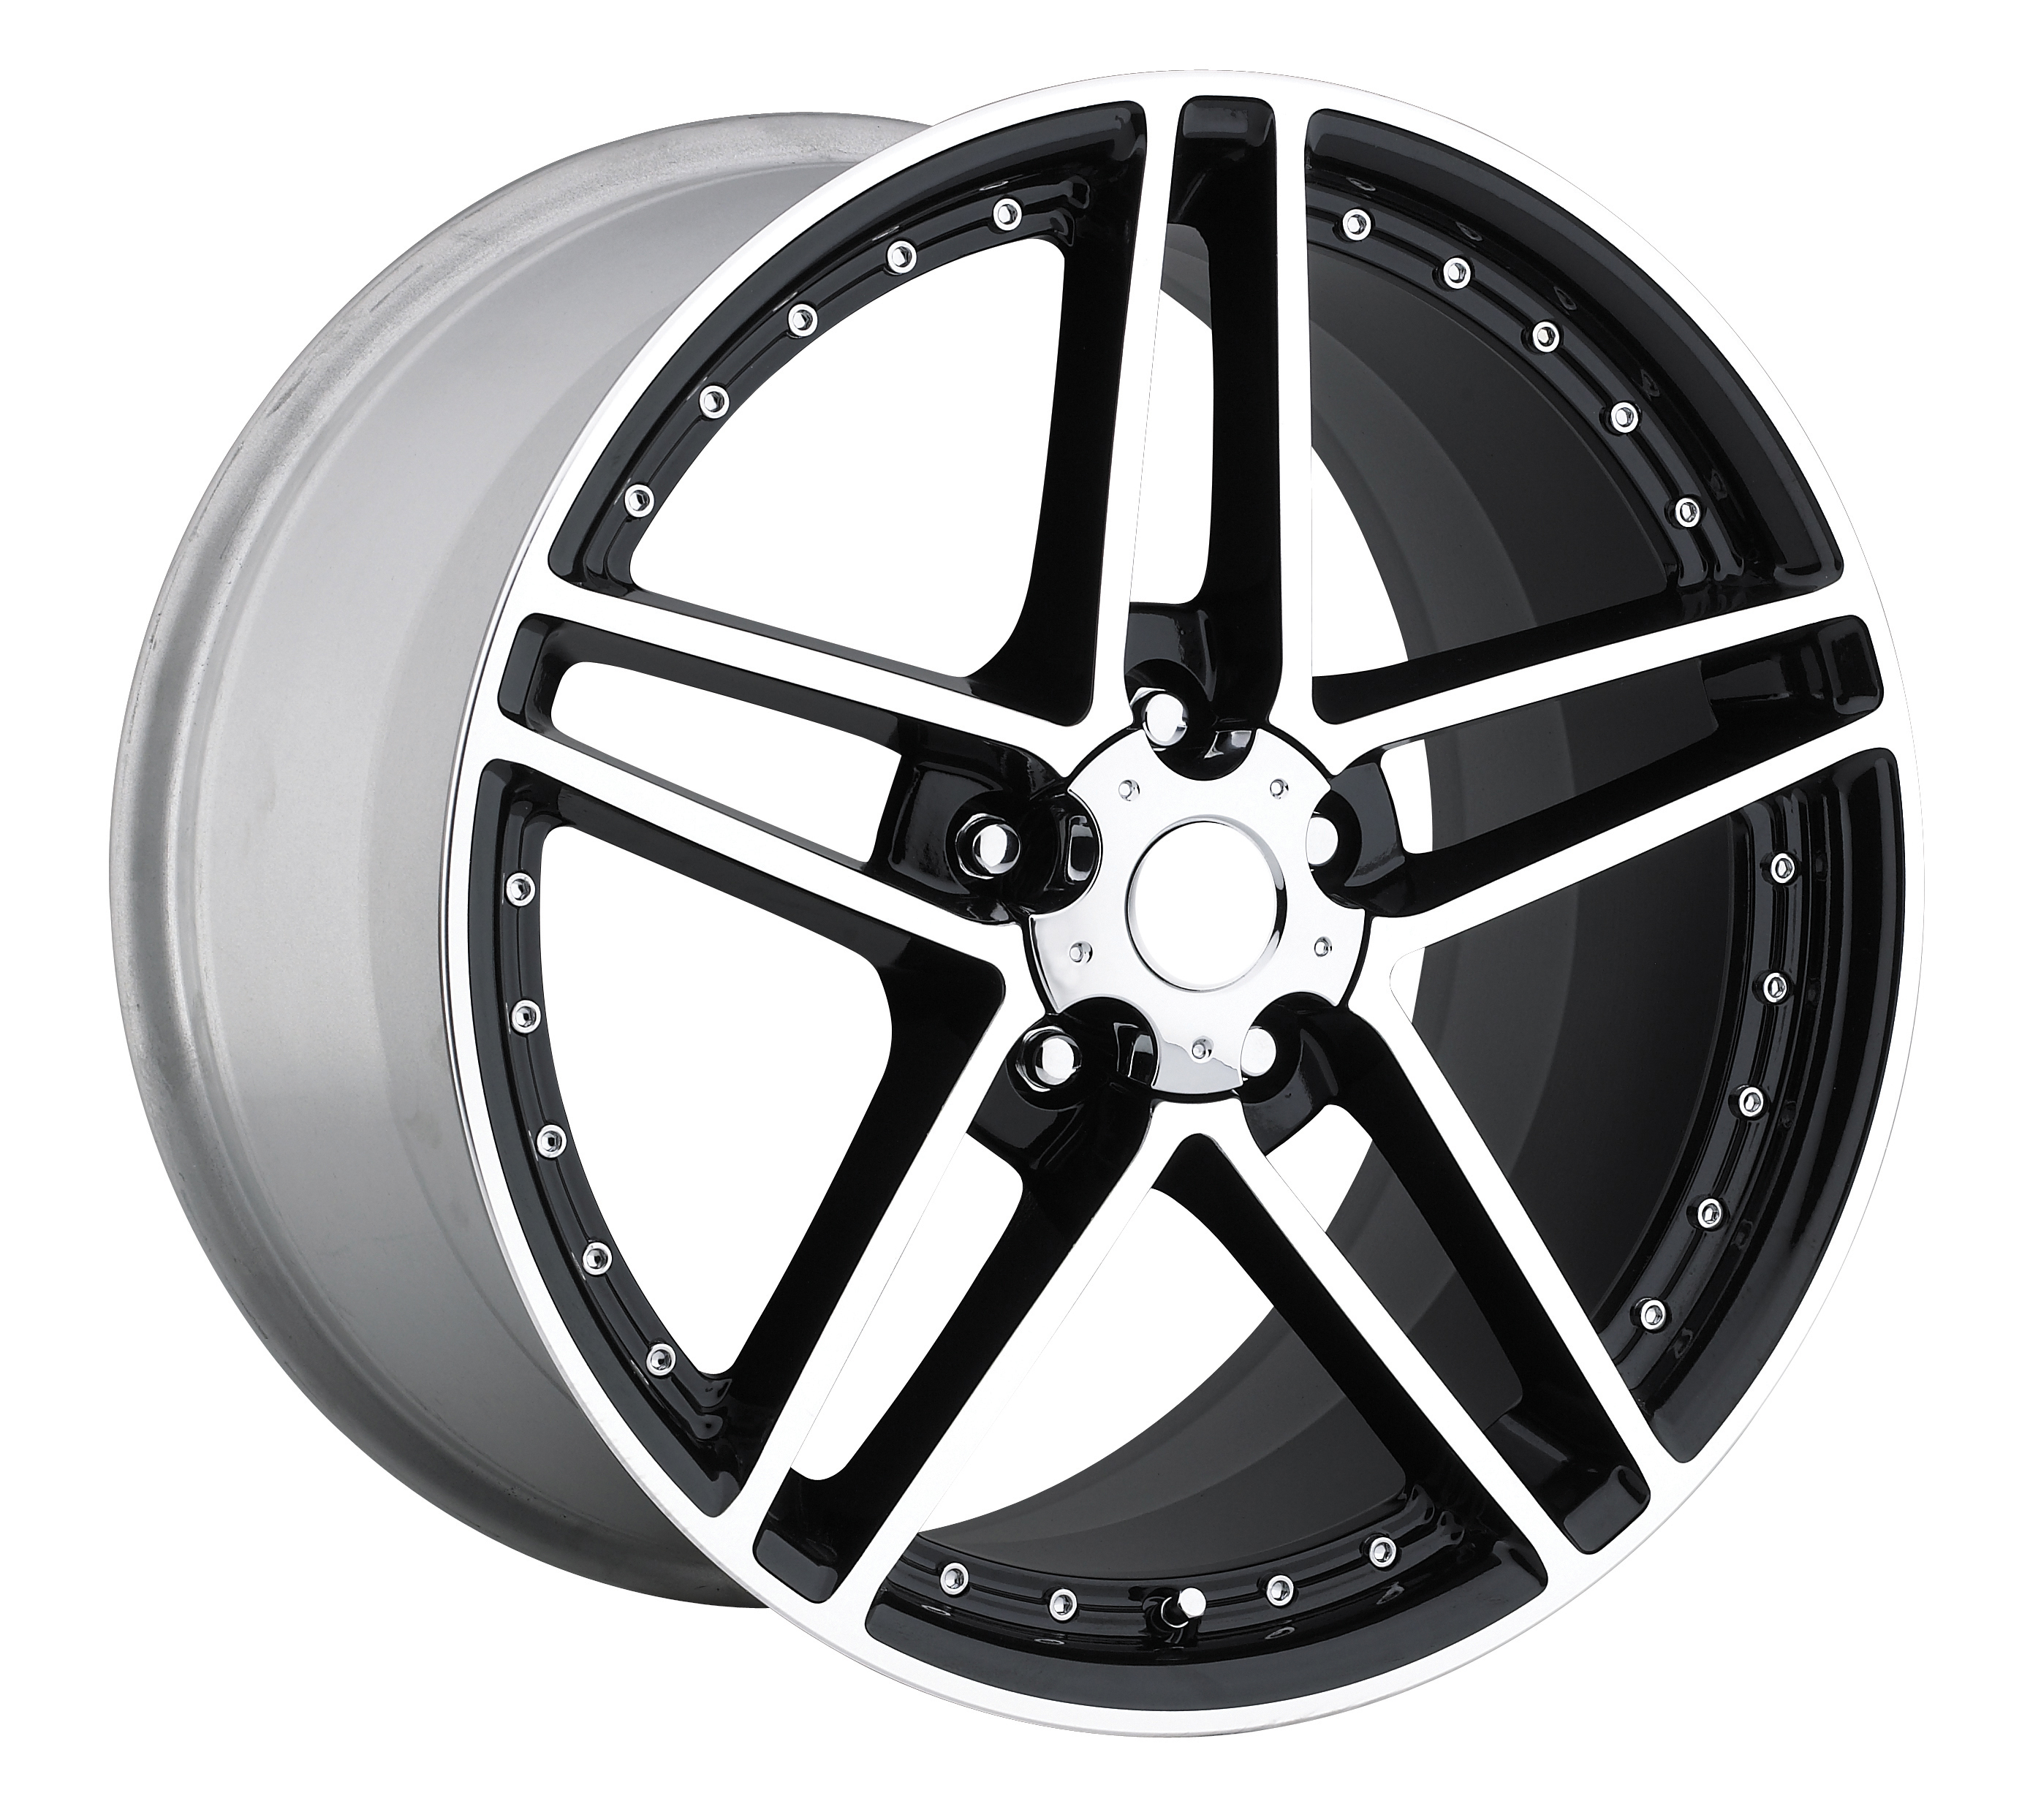 Chevrolet Corvette 1997-2012 17x8.5 5x4.75 +56 - C6 Z06 Motorsport Wheel -  Black Machine Face With Cap